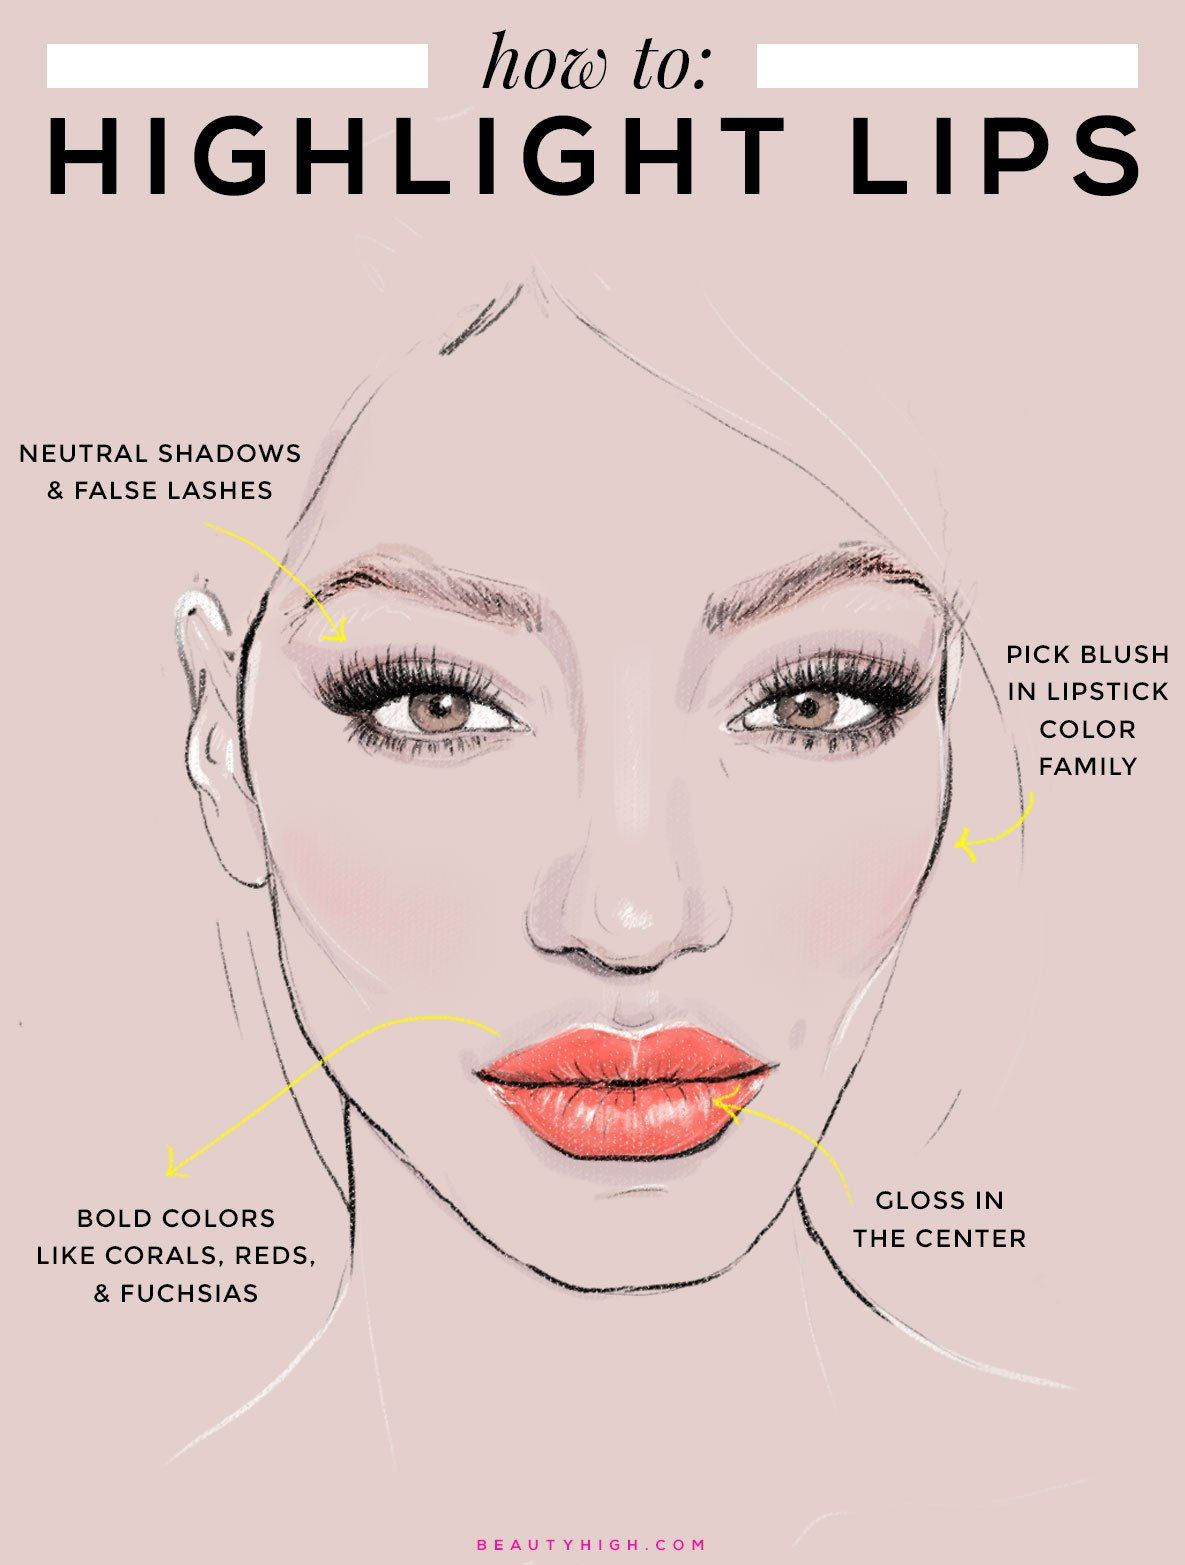 Prom Makeup Tips to Highlight Your Facial Features  Prom makeup